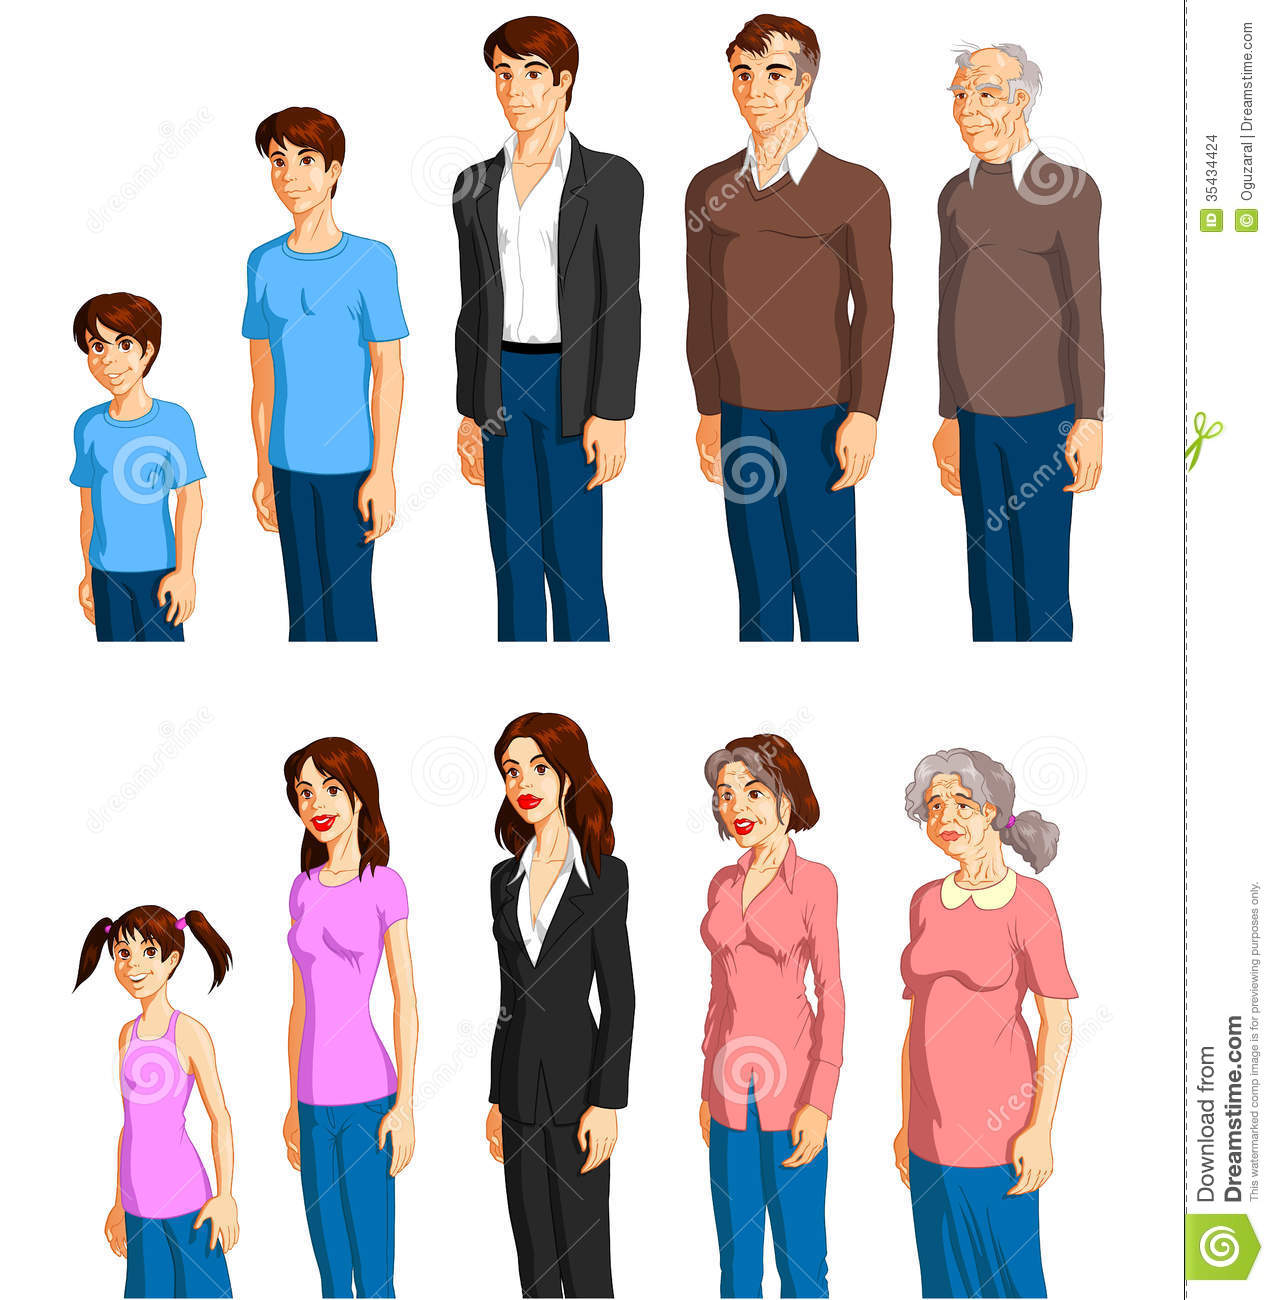 Aging: Male And Female Aging Stock Vector. Illustration Of